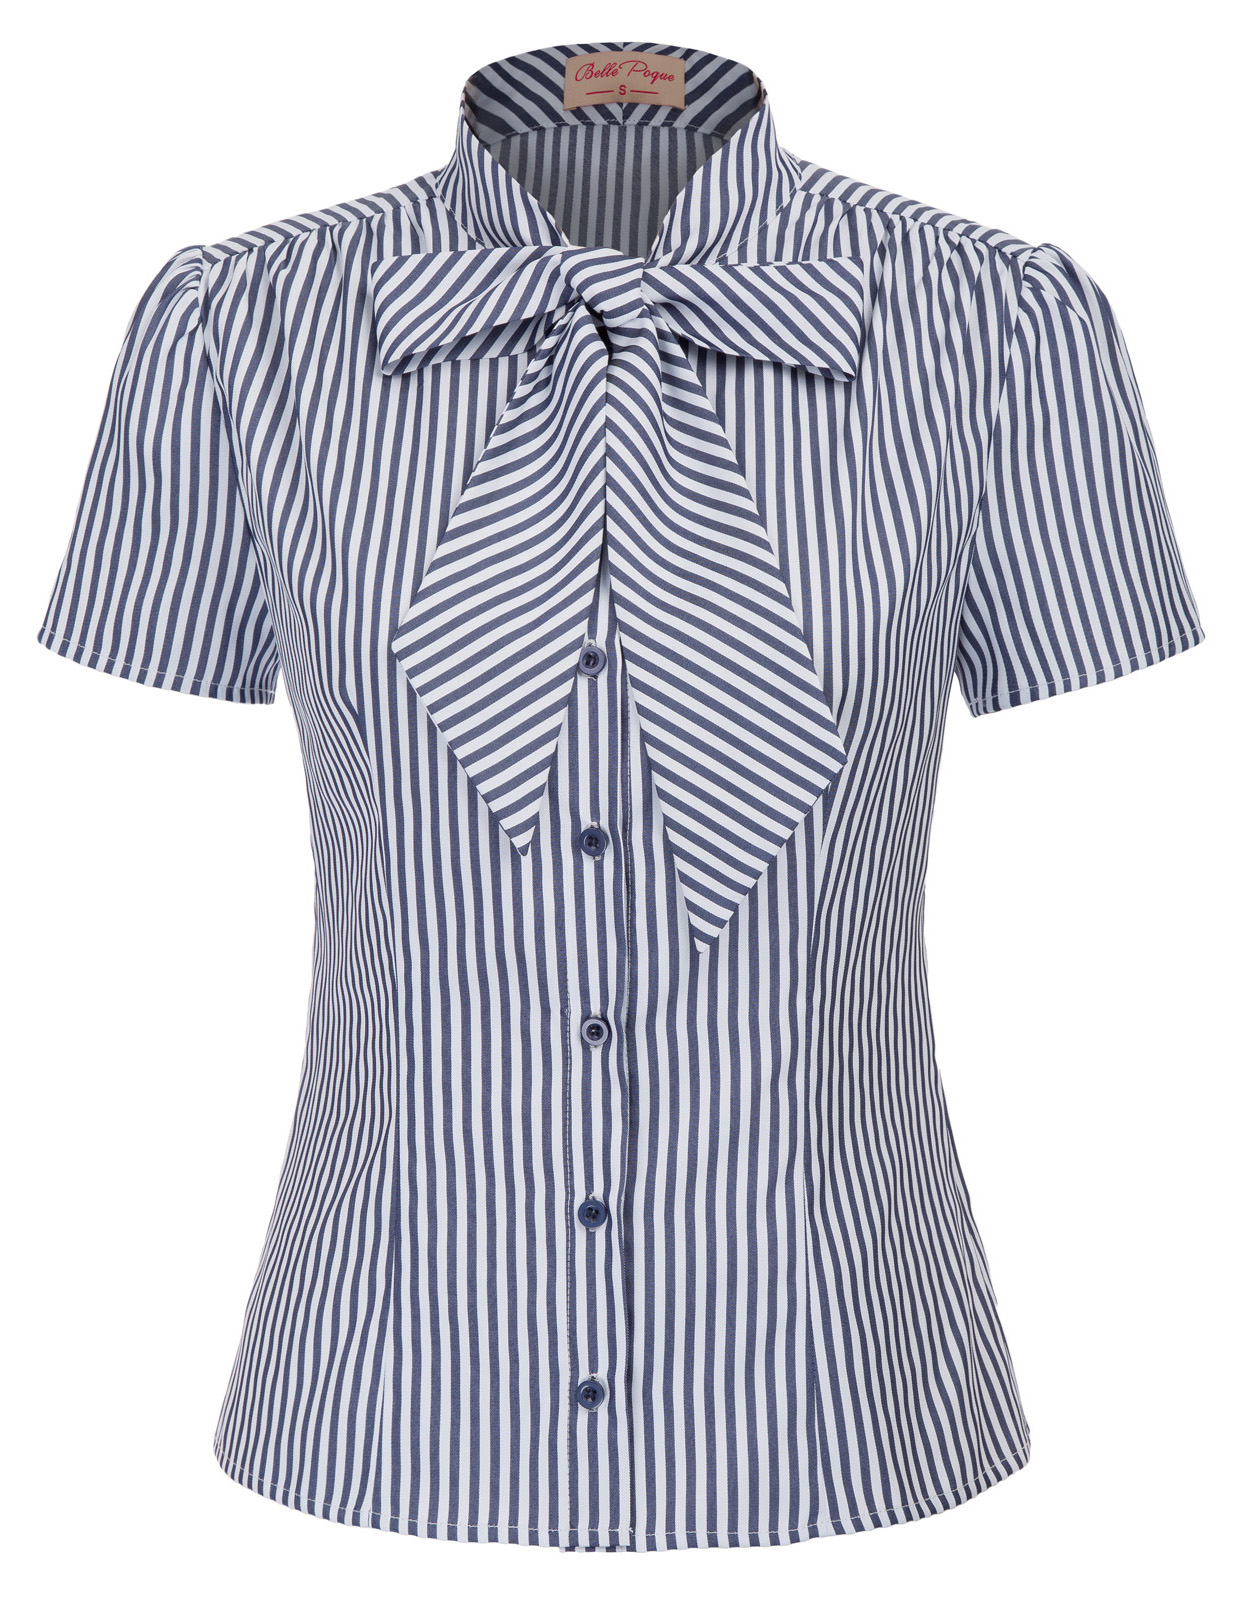 summer Black blue striped shirt womens tops and blouses for office work party short sleeve shirts bowknot Blusas Femininas